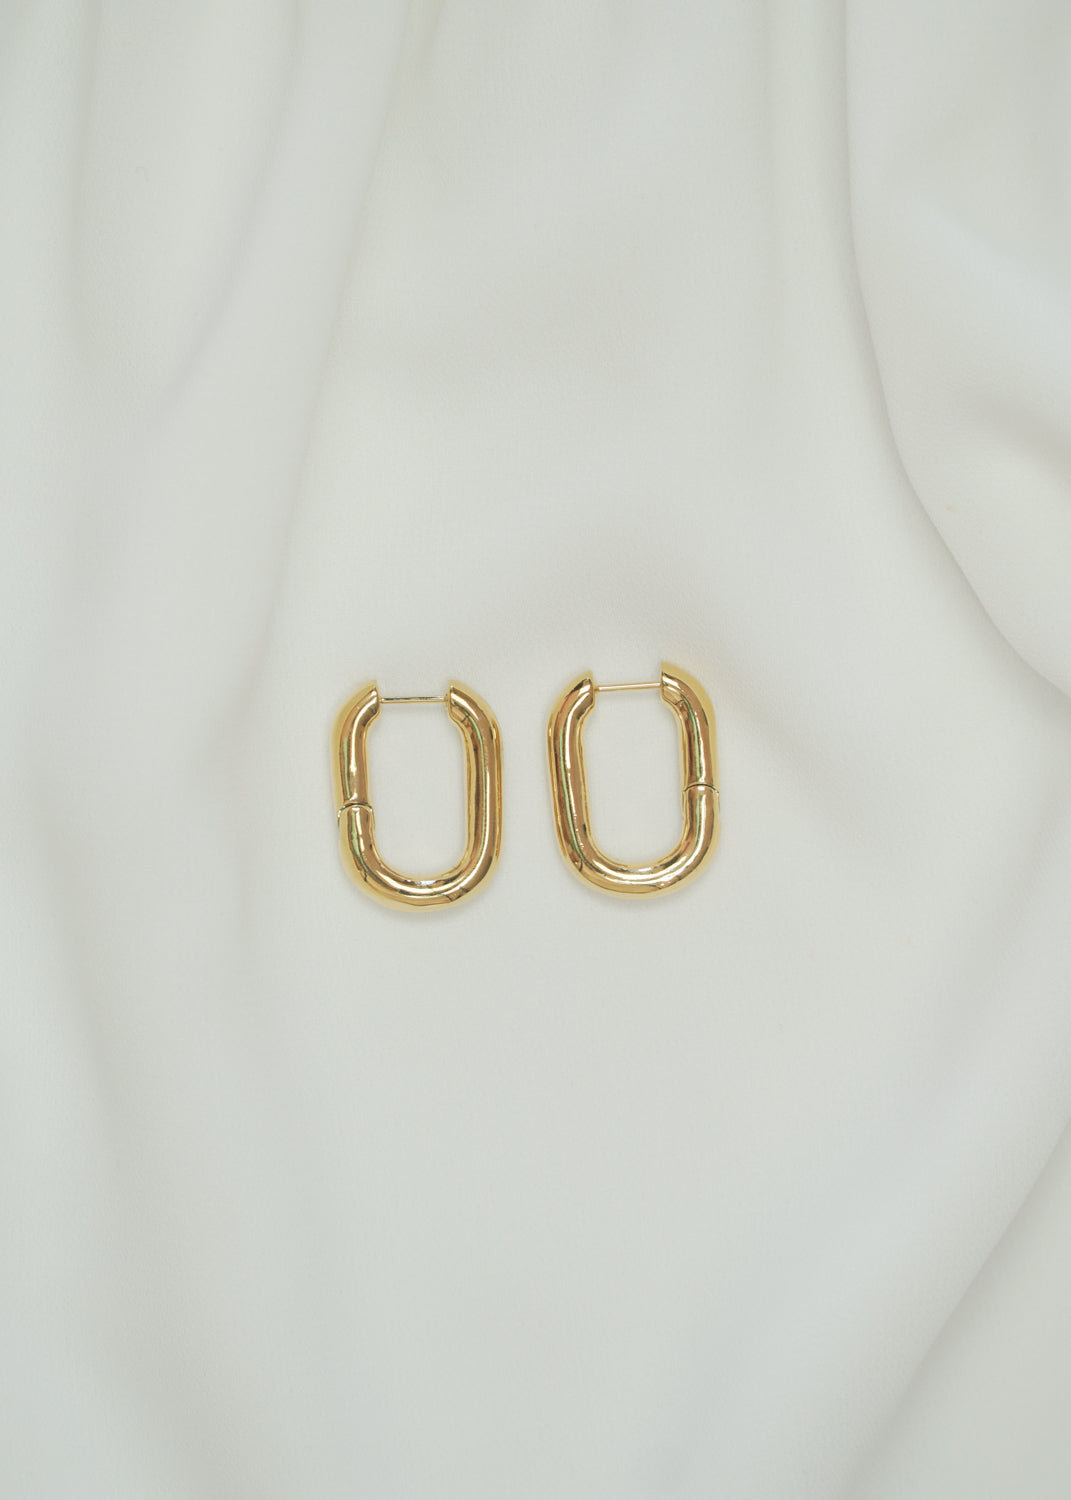 Vintage KuiKui Earrings